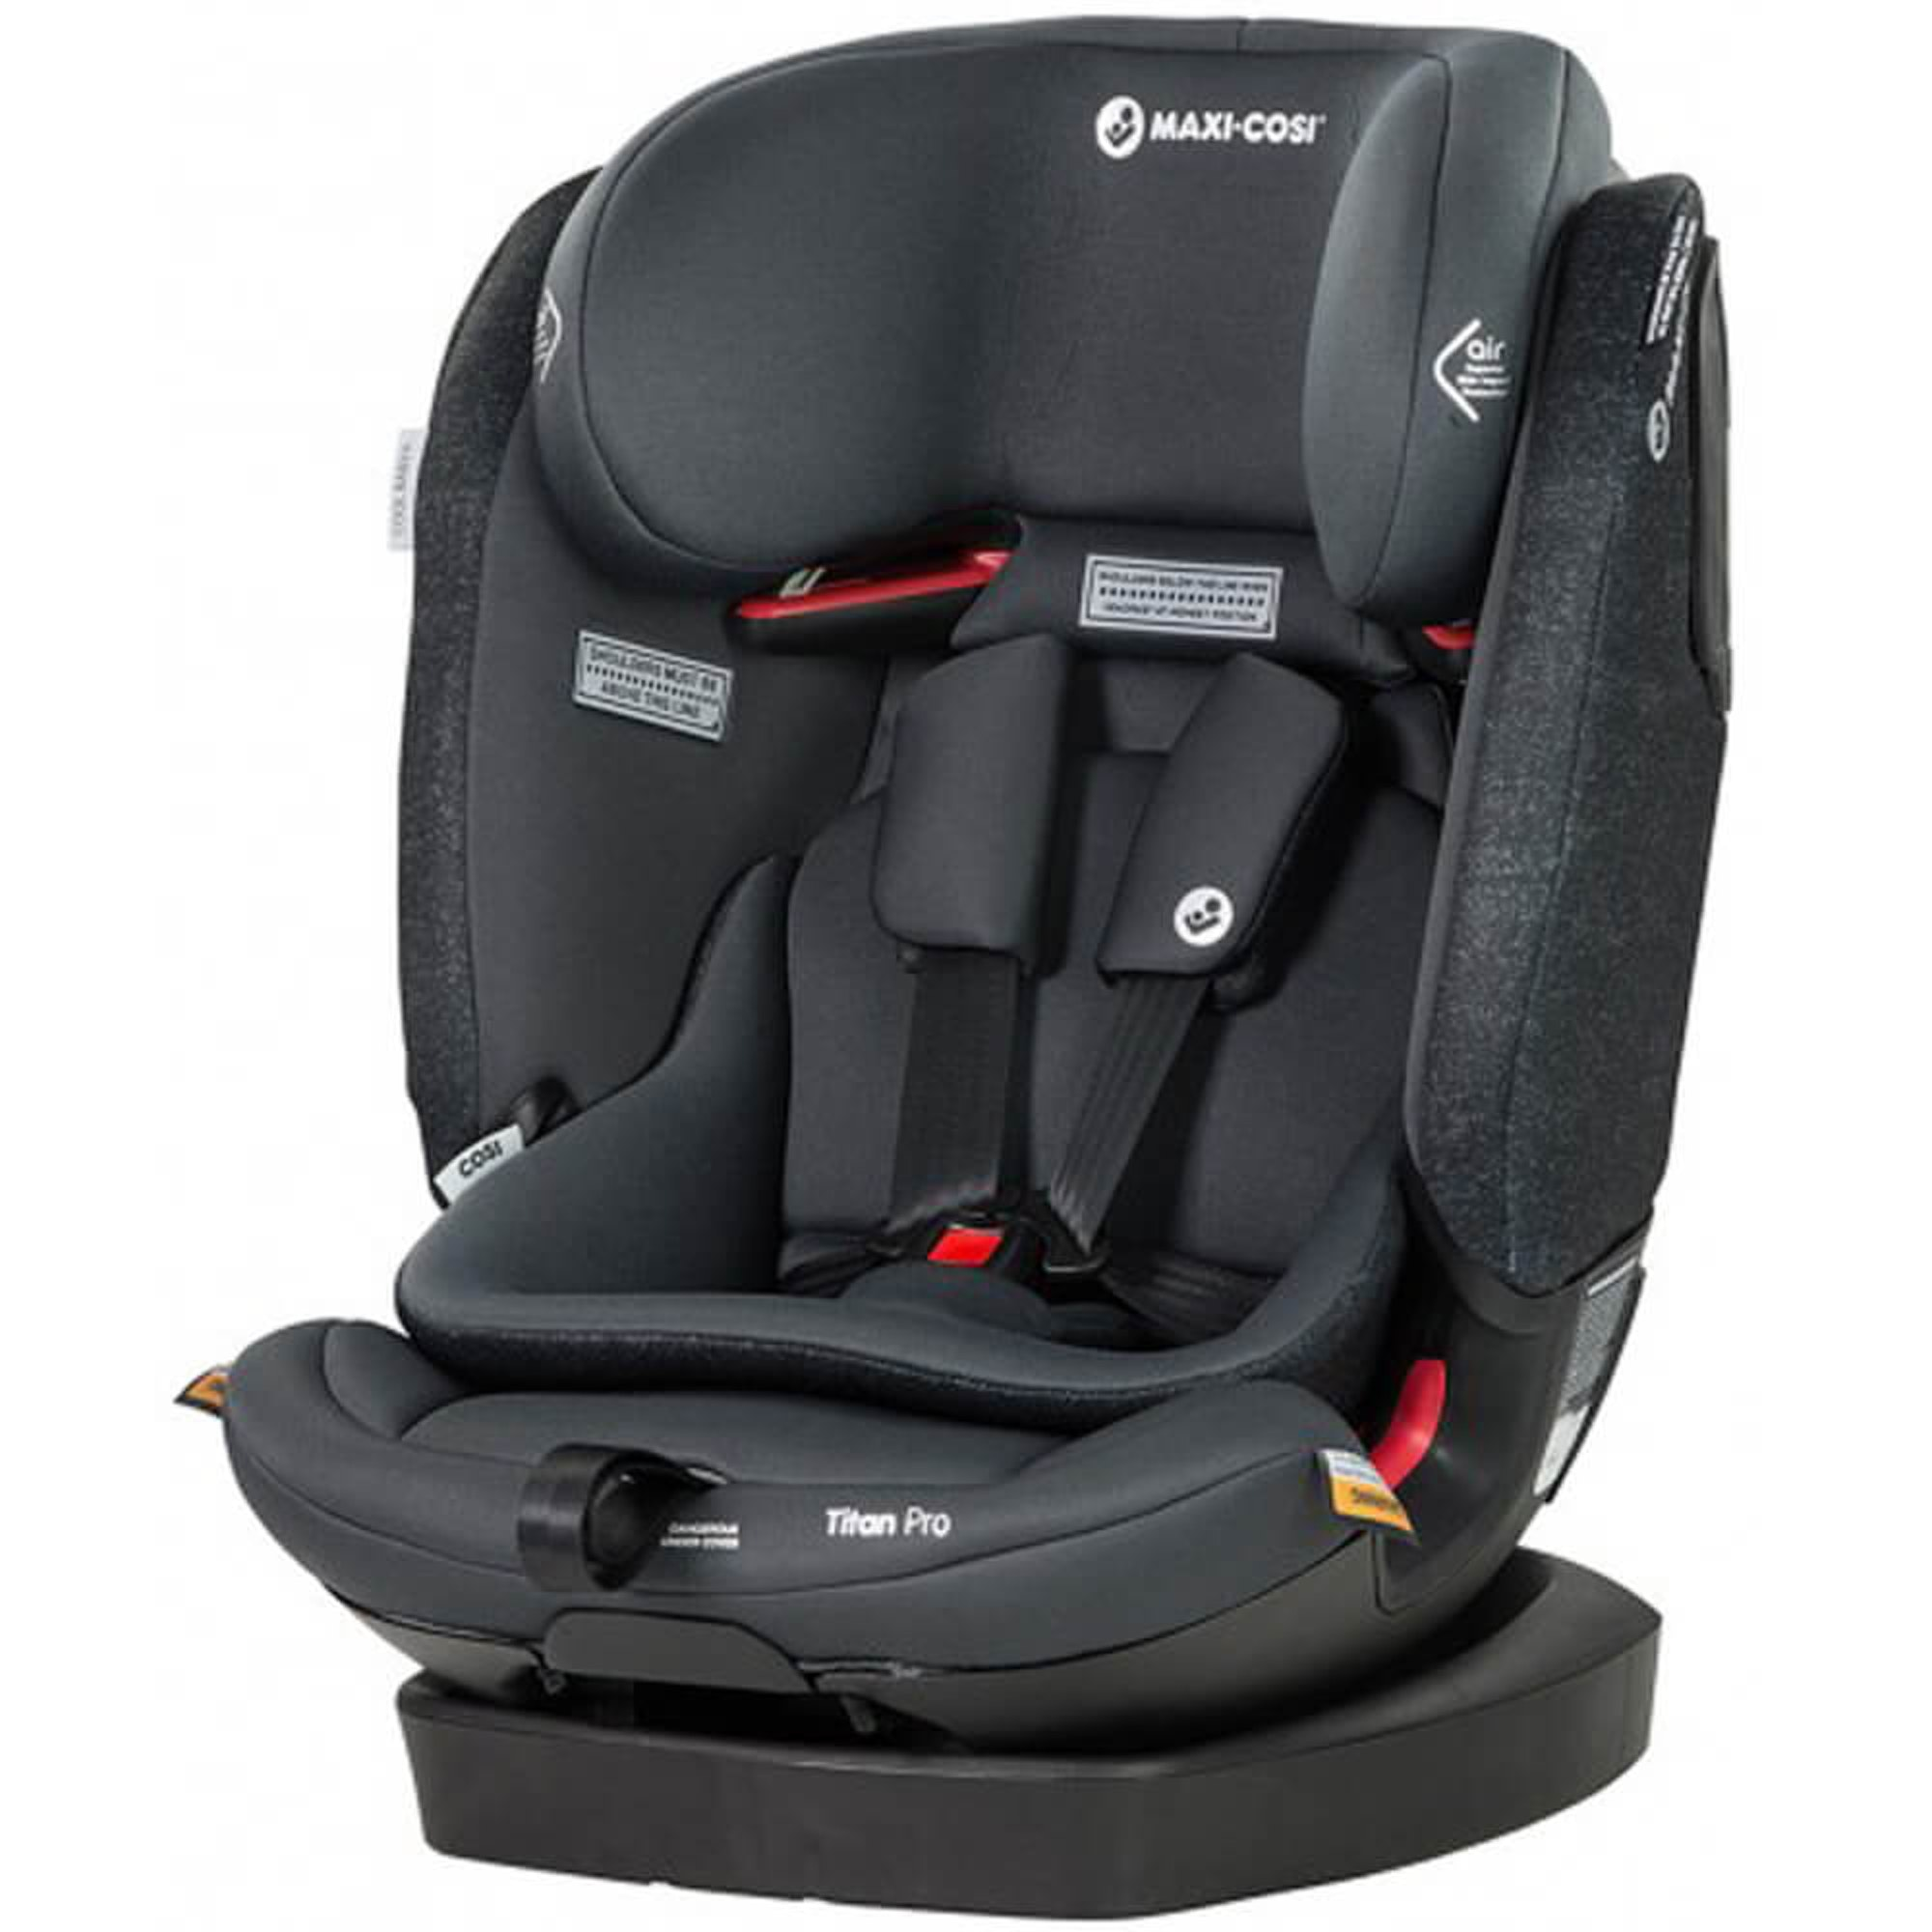 Maxi Cosi Titan Pro Convertible with FREE fitting